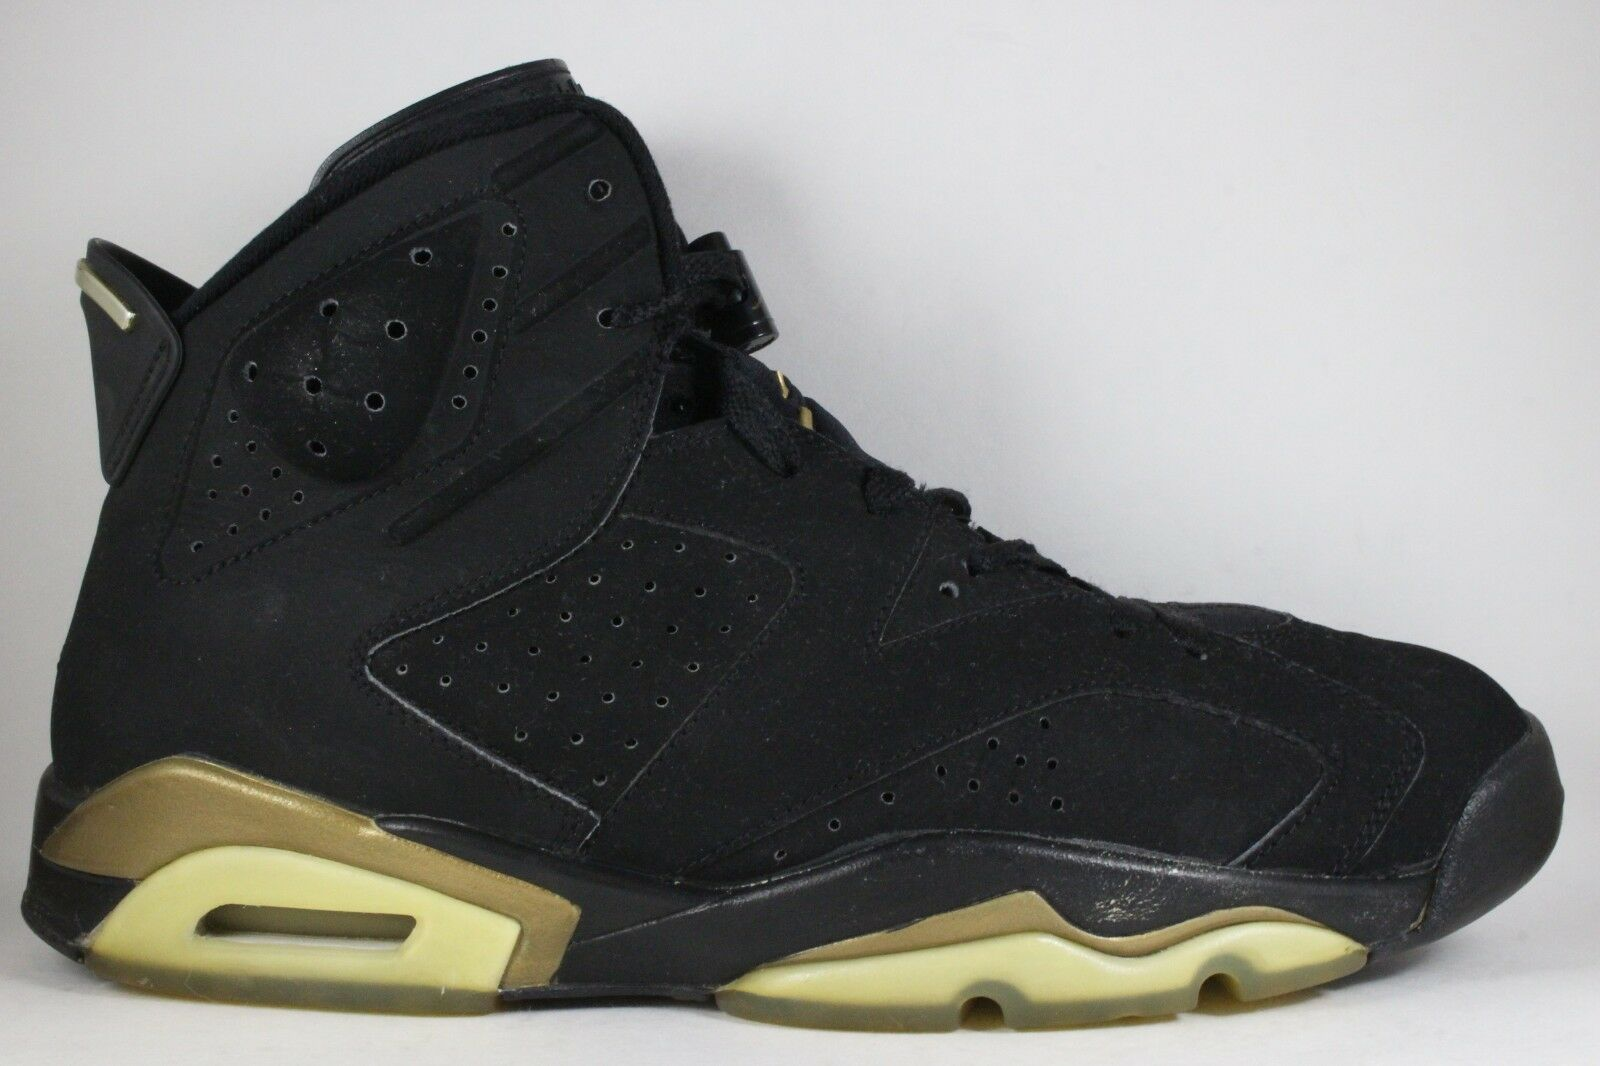 Nike Air Jordan 6 VI Retro DMP Pack Black gold size 11.5